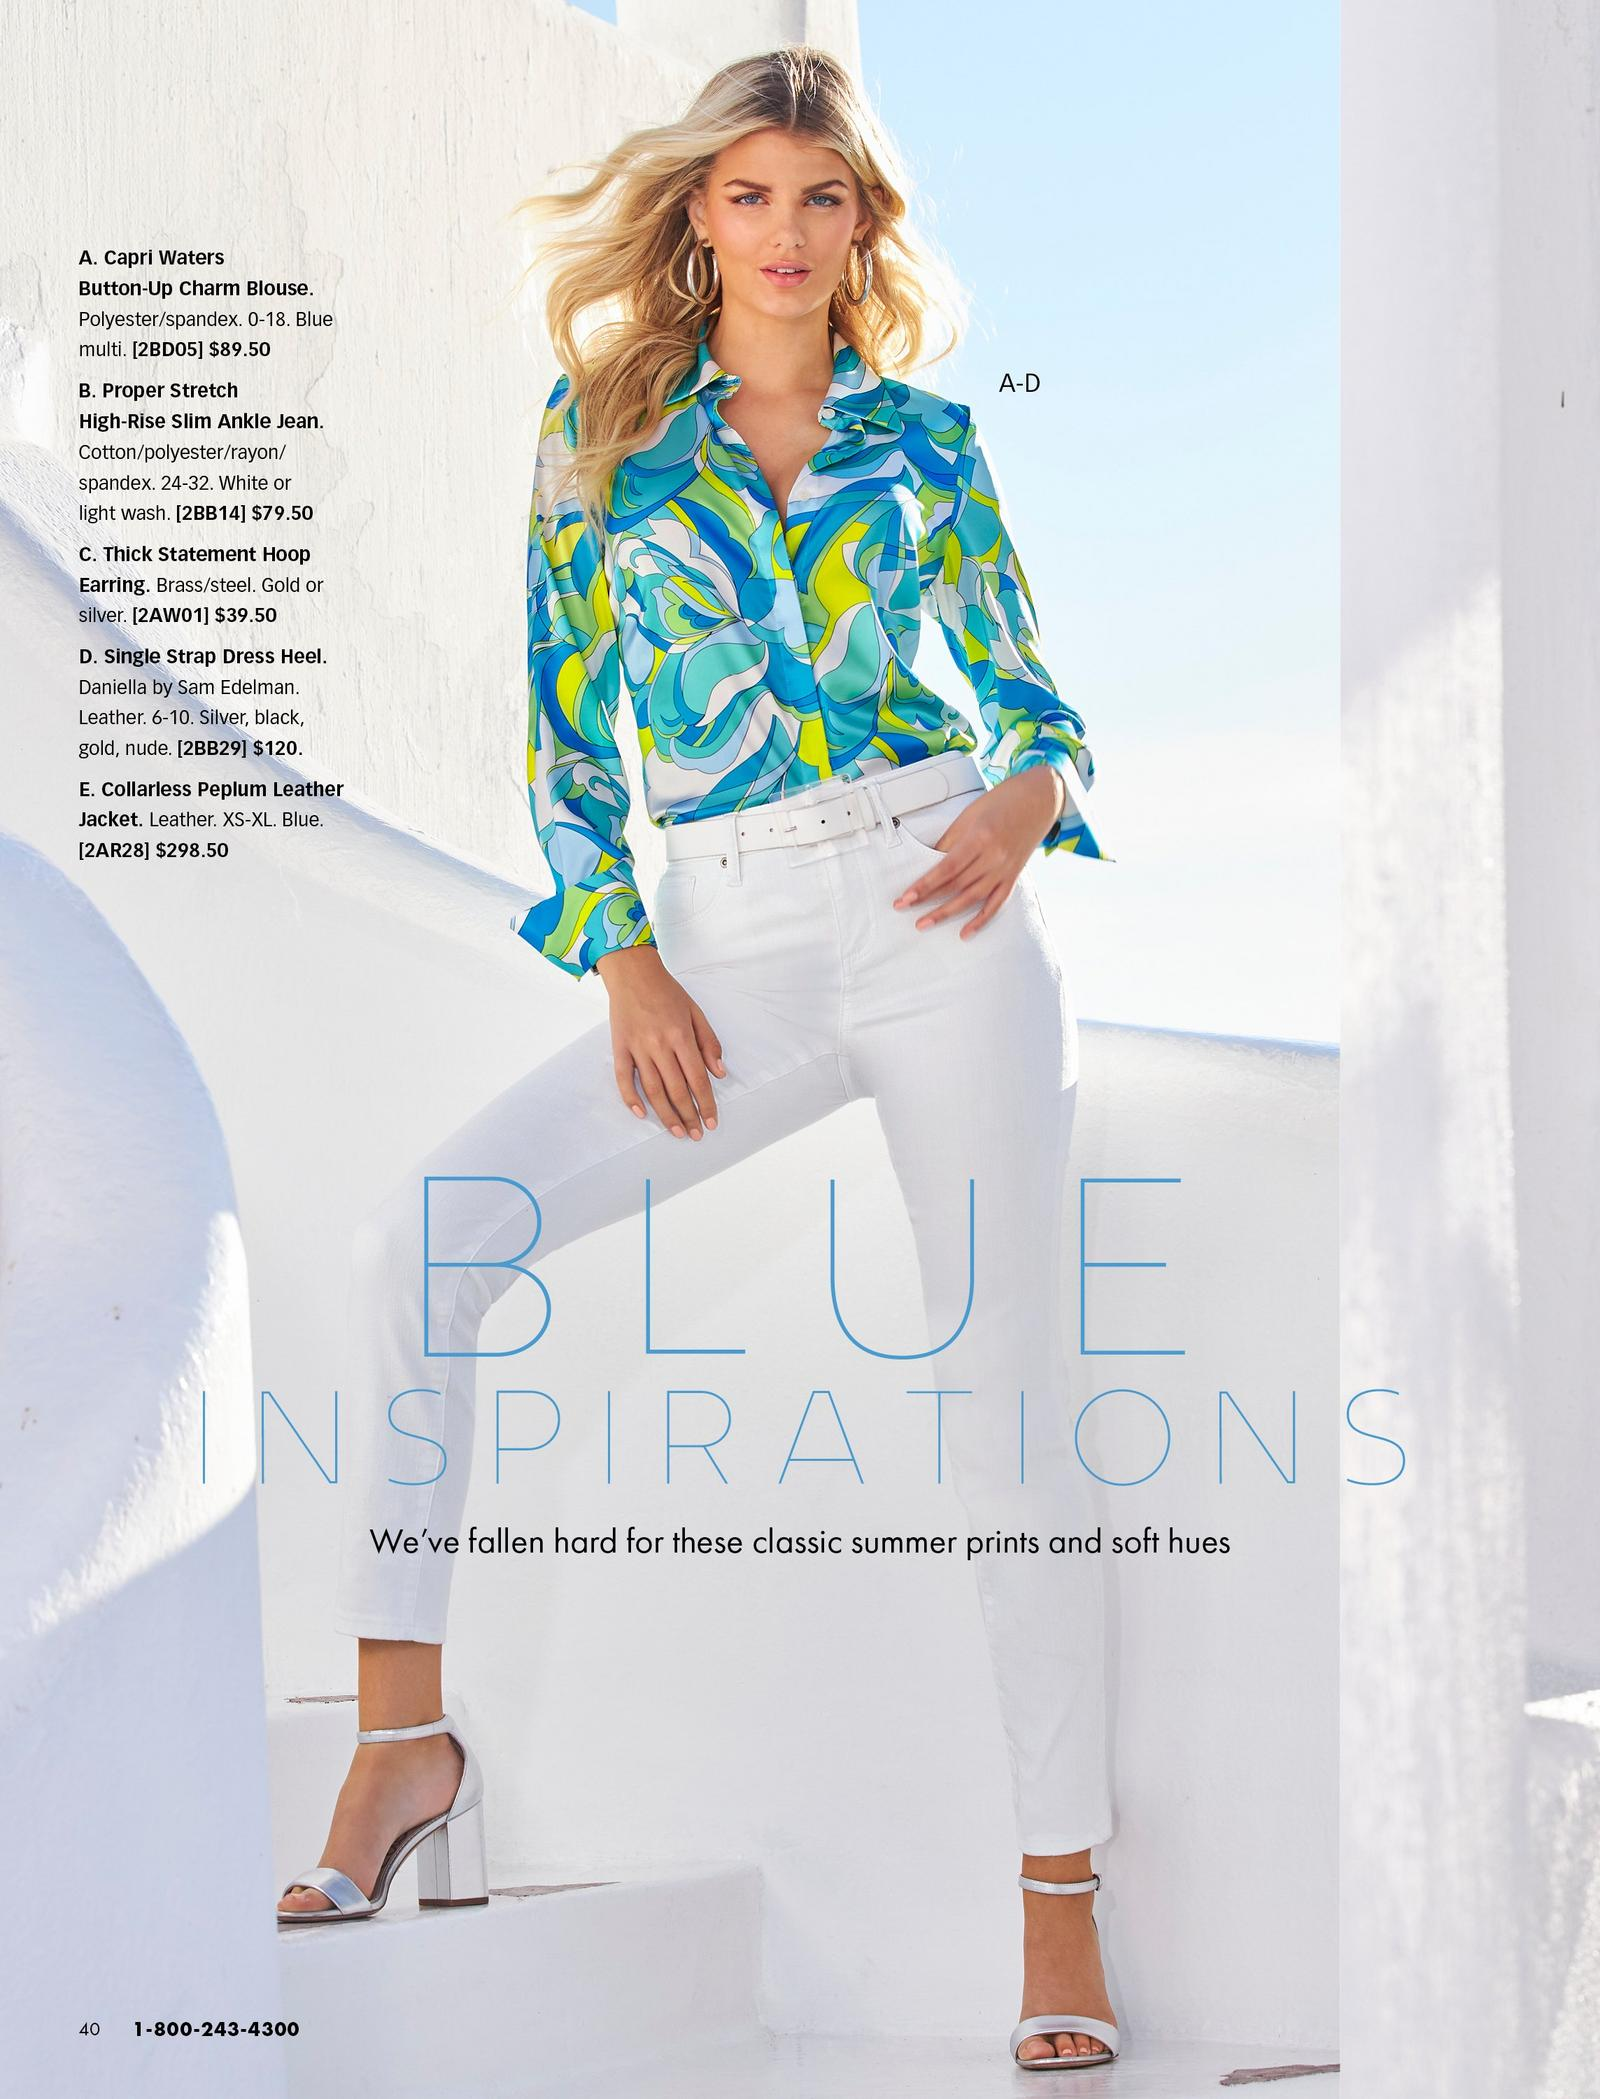 model wearing a blue and green paisley print button down charm blouse, white belt, white jeans, gold hoop earrings, and silver heels.